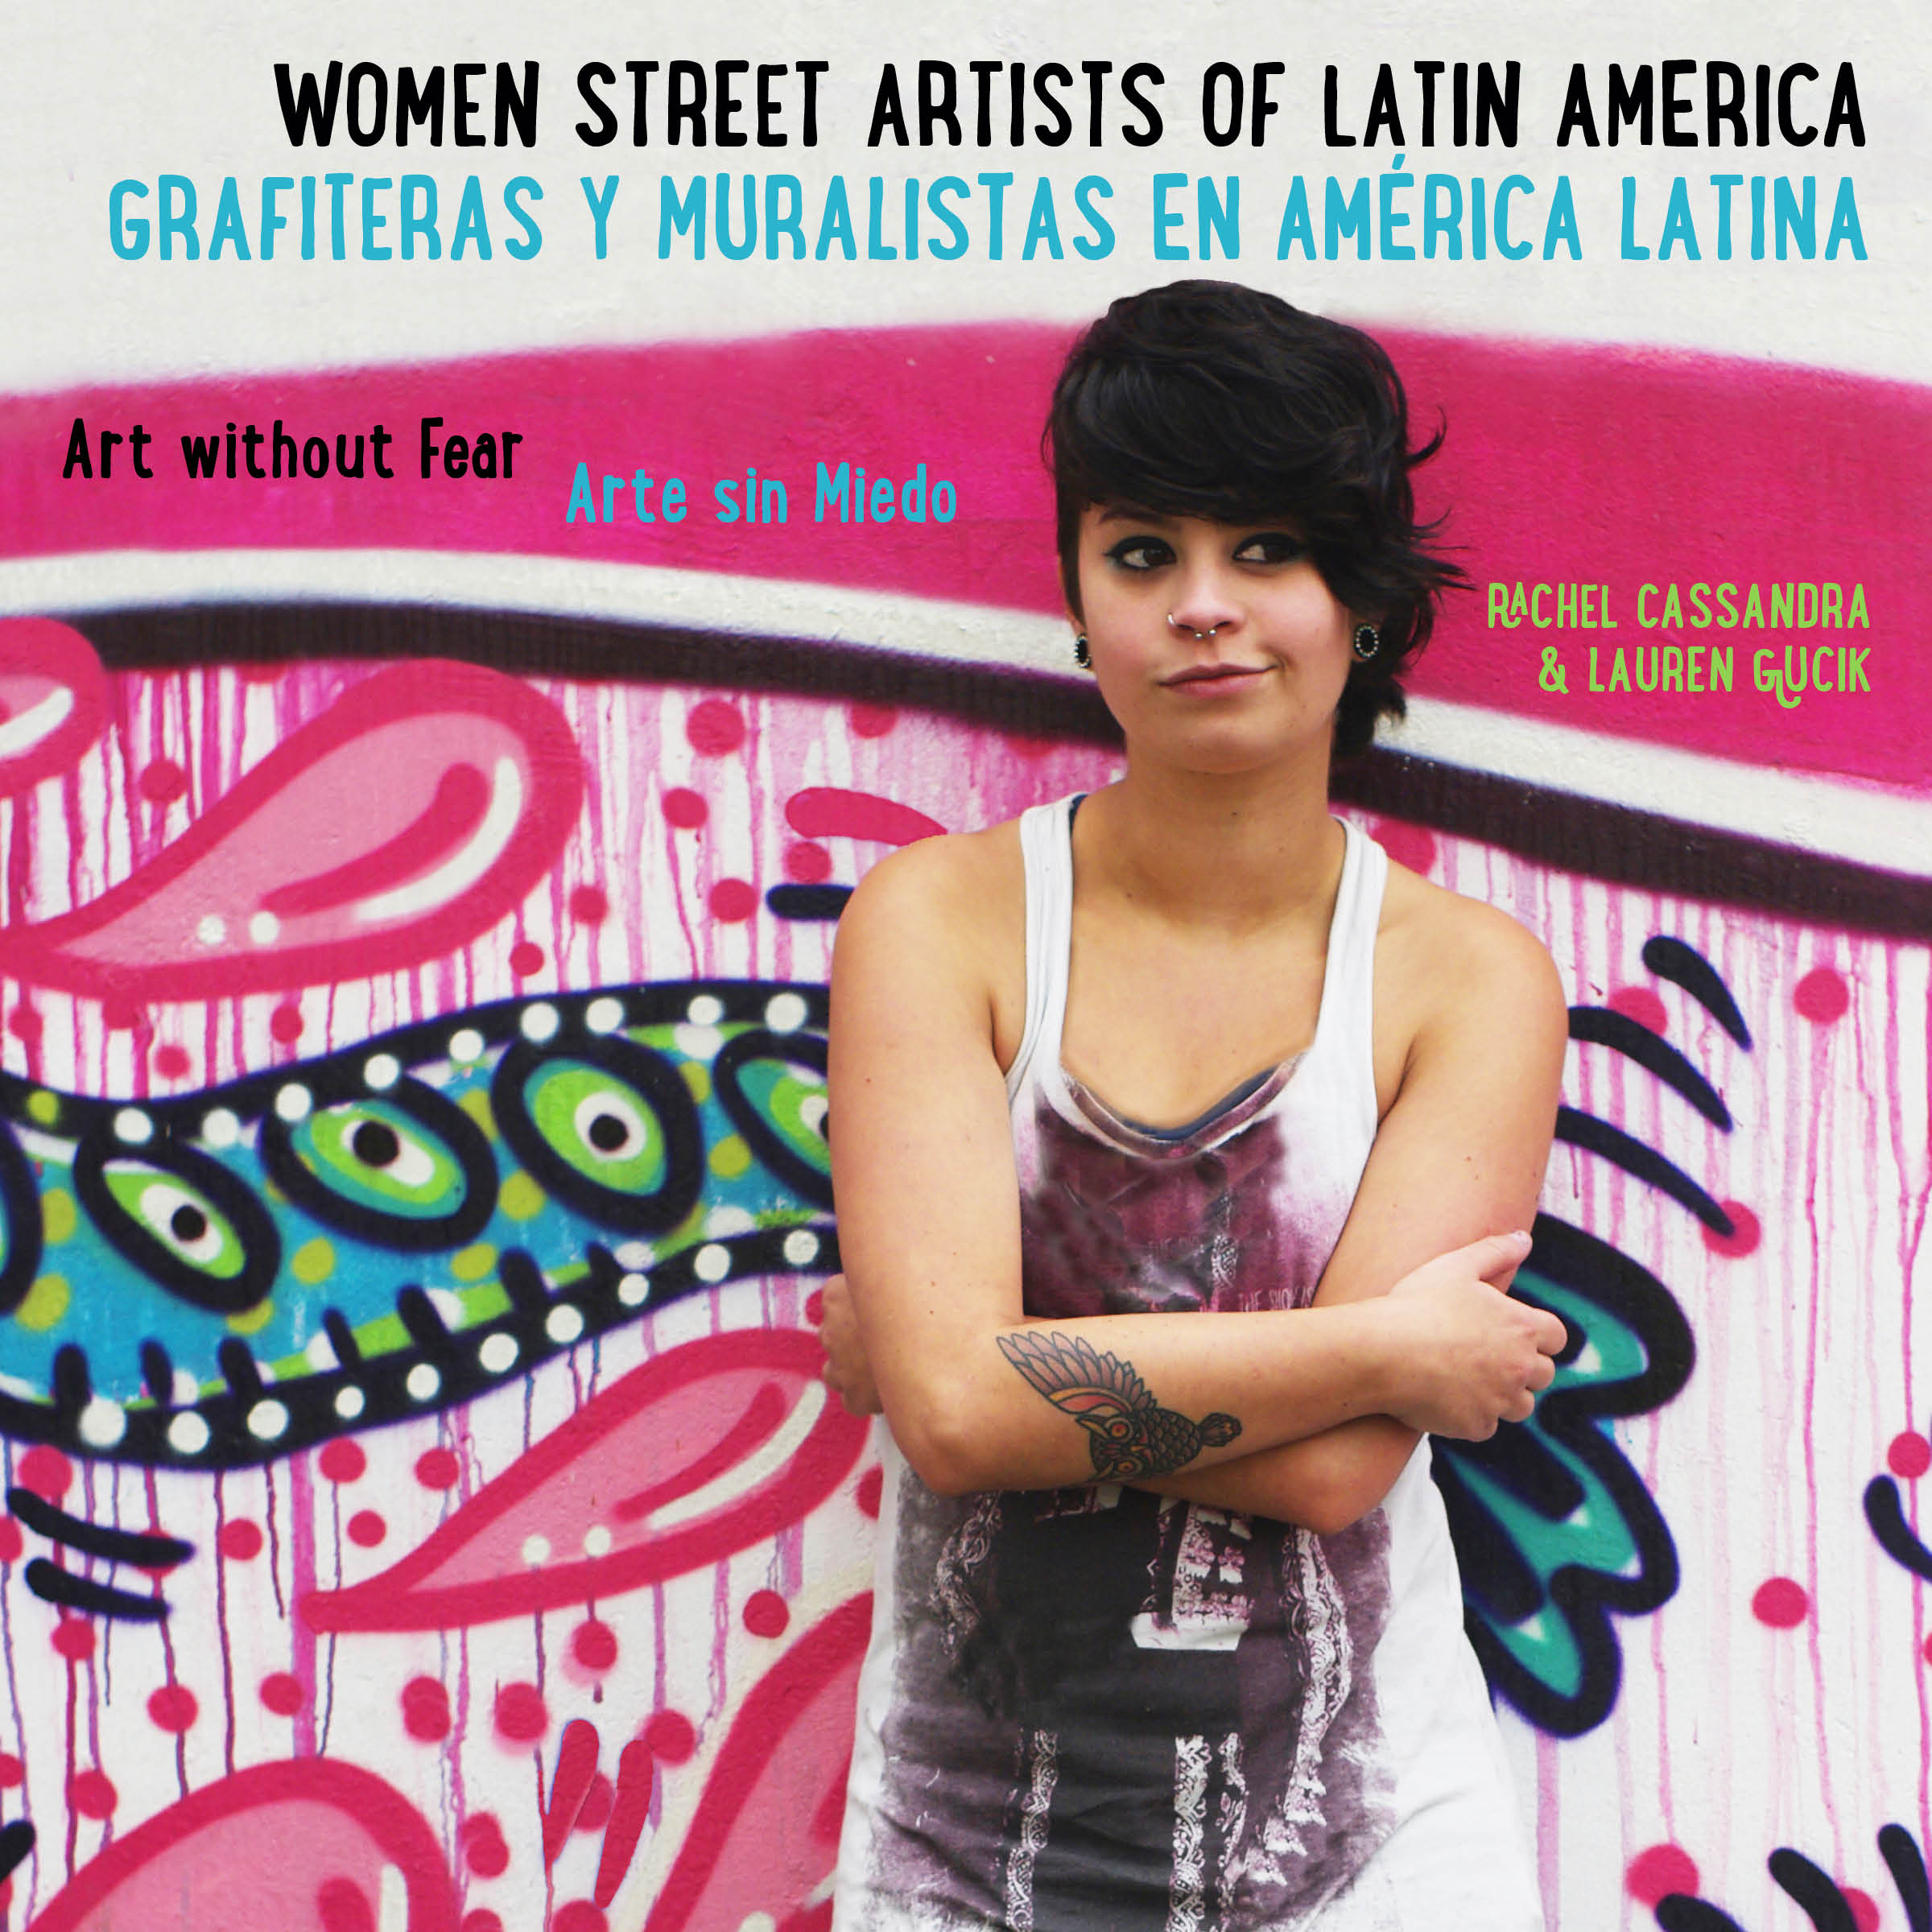 Book Cover of Women Street artists of Latin America by San Francisco based Rachael Cassandra and Lauren Gucik